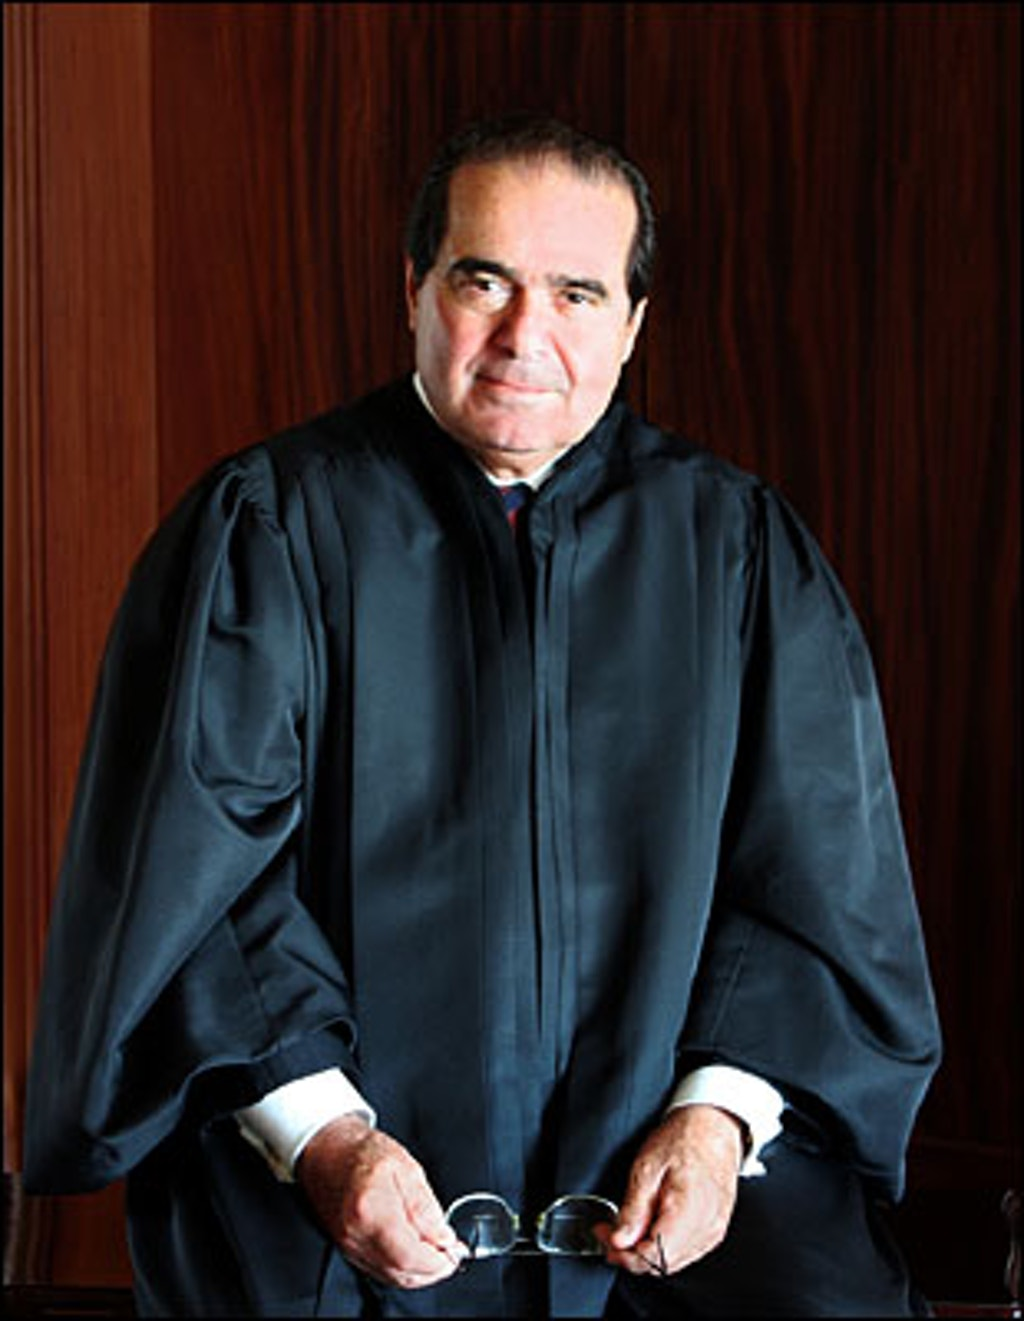 U.S. Supreme Court Associate Justice Antonin Scalia, Outspoken Defender of Capital Punishment, Has Died